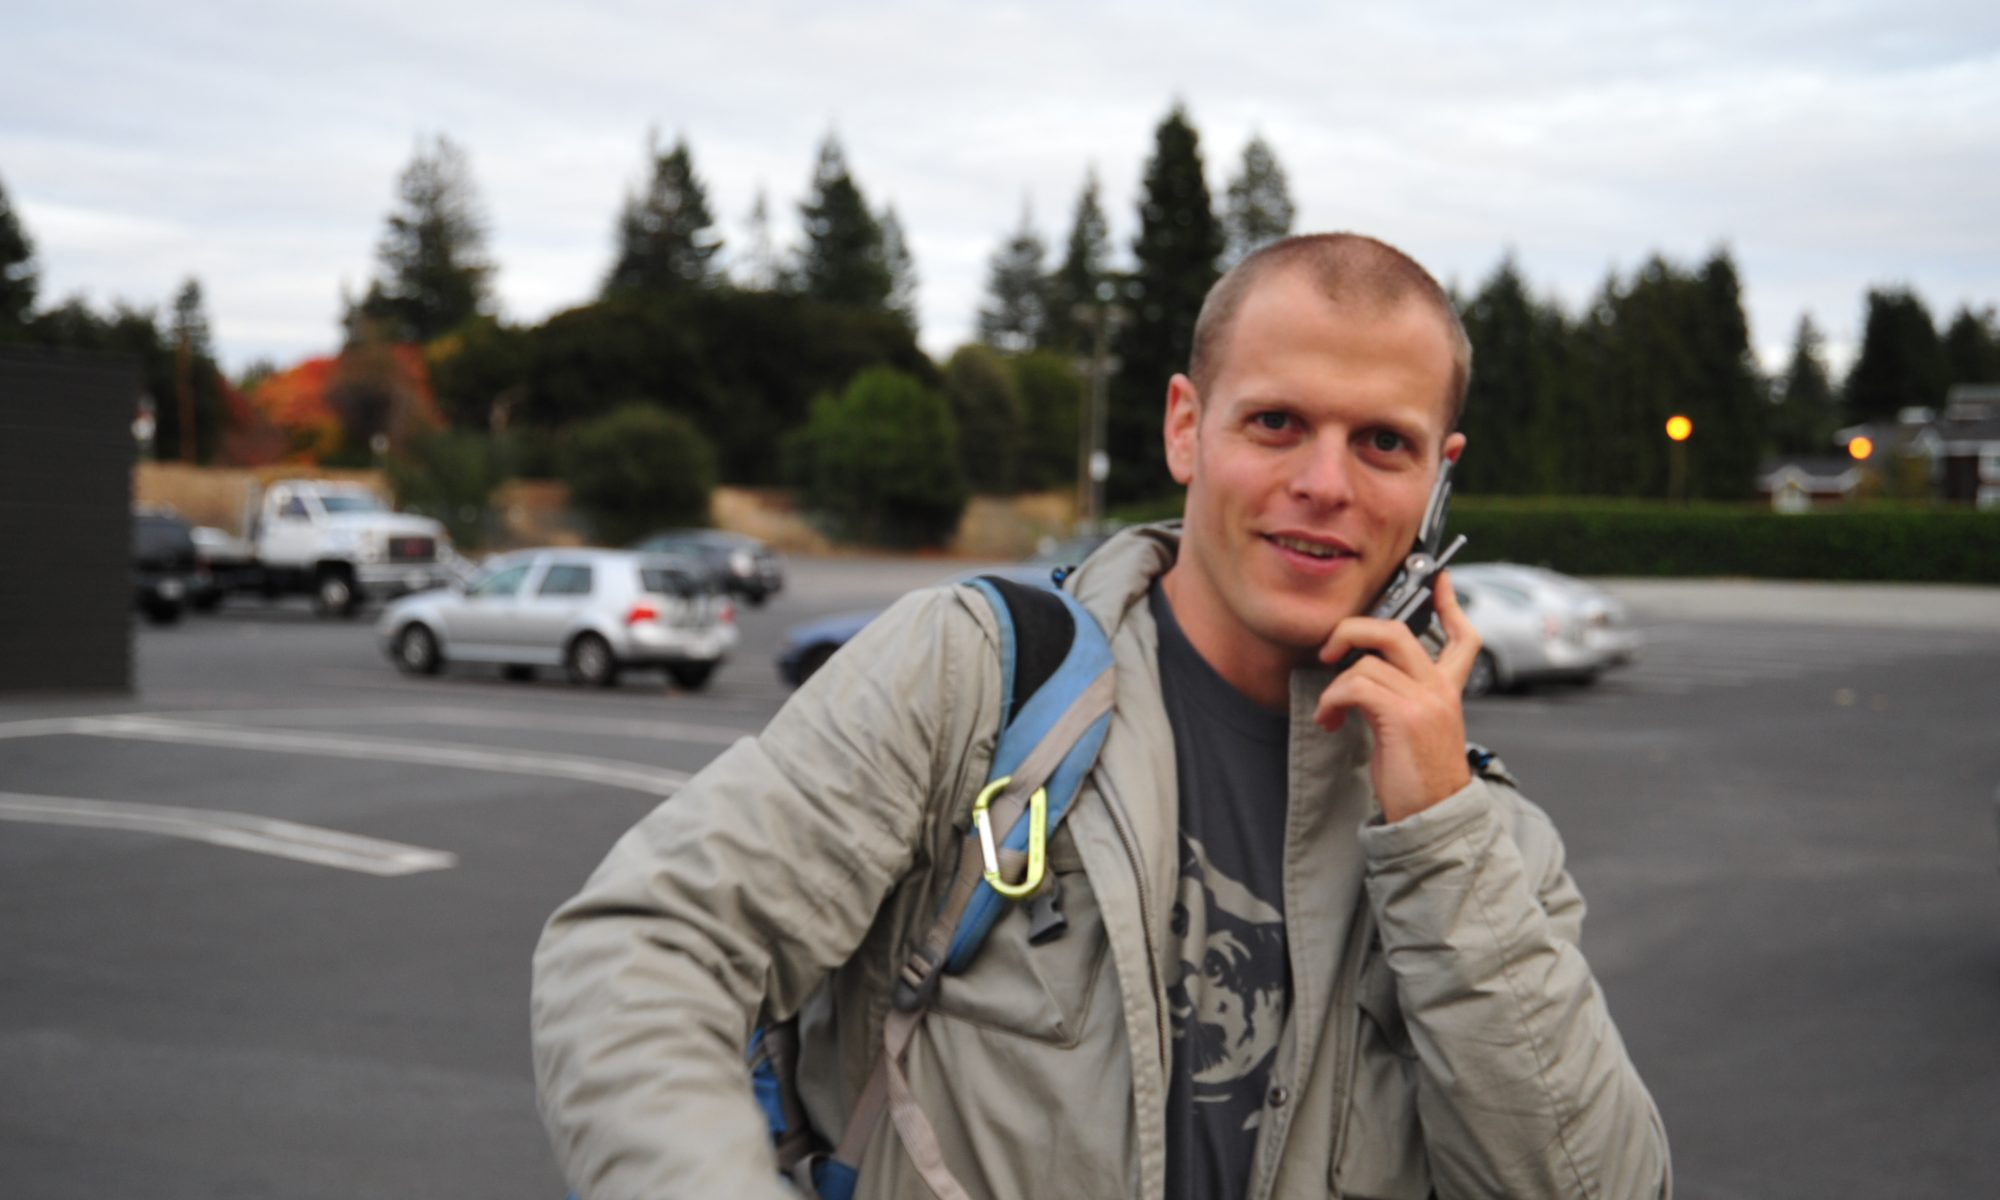 Tim Ferriss in November 2008, talking on a mobile phone.